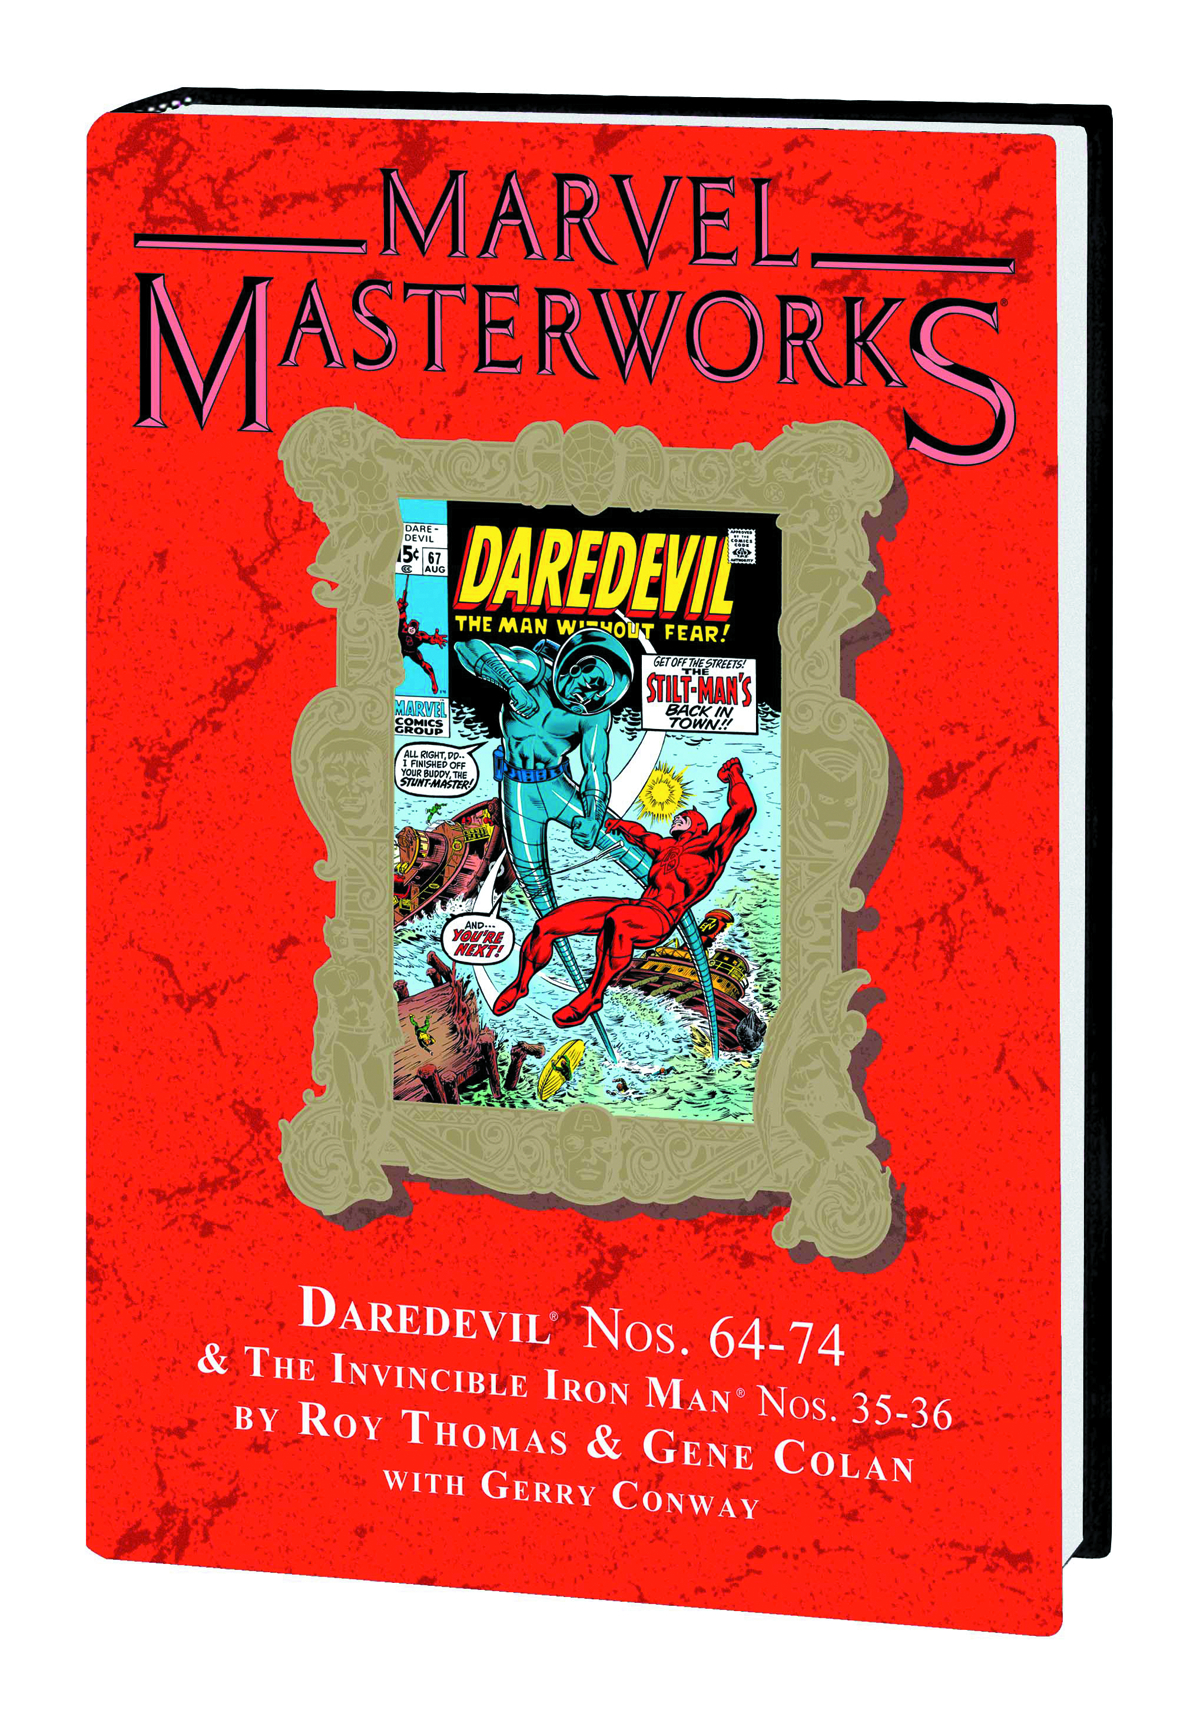 MMW DAREDEVIL HC VOL 07 DM VAR ED 198